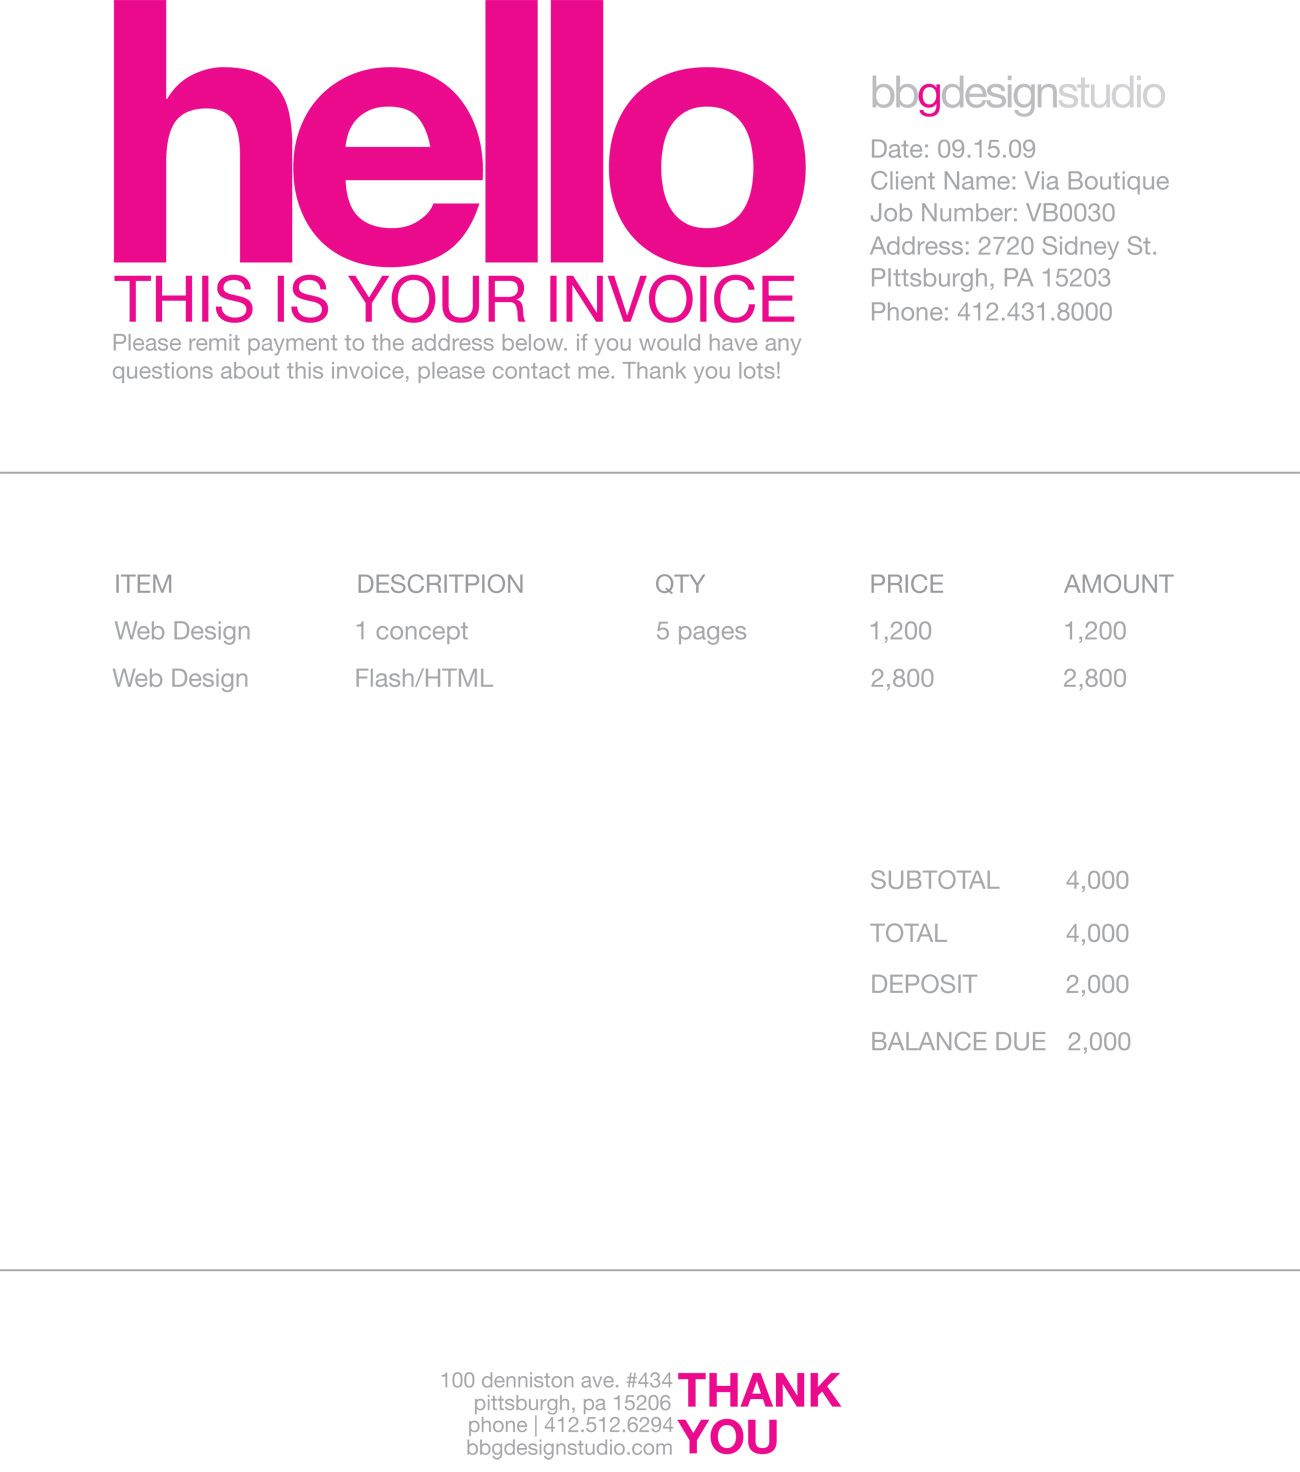 Coachoutletonlineplusus  Nice  Images About Invoice Design On Pinterest With Marvelous Wording For Receipt Of Payment Besides Buy Receipt Printer Furthermore Tax Deductible Receipts With Delectable Rent Receipt Sample Doc Also Bookstore Receipt In Addition Take Receipt And Blank Receipt Template Free As Well As Plumbing Receipts Additionally Supermarket Receipts From Pinterestcom With Coachoutletonlineplusus  Marvelous  Images About Invoice Design On Pinterest With Delectable Wording For Receipt Of Payment Besides Buy Receipt Printer Furthermore Tax Deductible Receipts And Nice Rent Receipt Sample Doc Also Bookstore Receipt In Addition Take Receipt From Pinterestcom